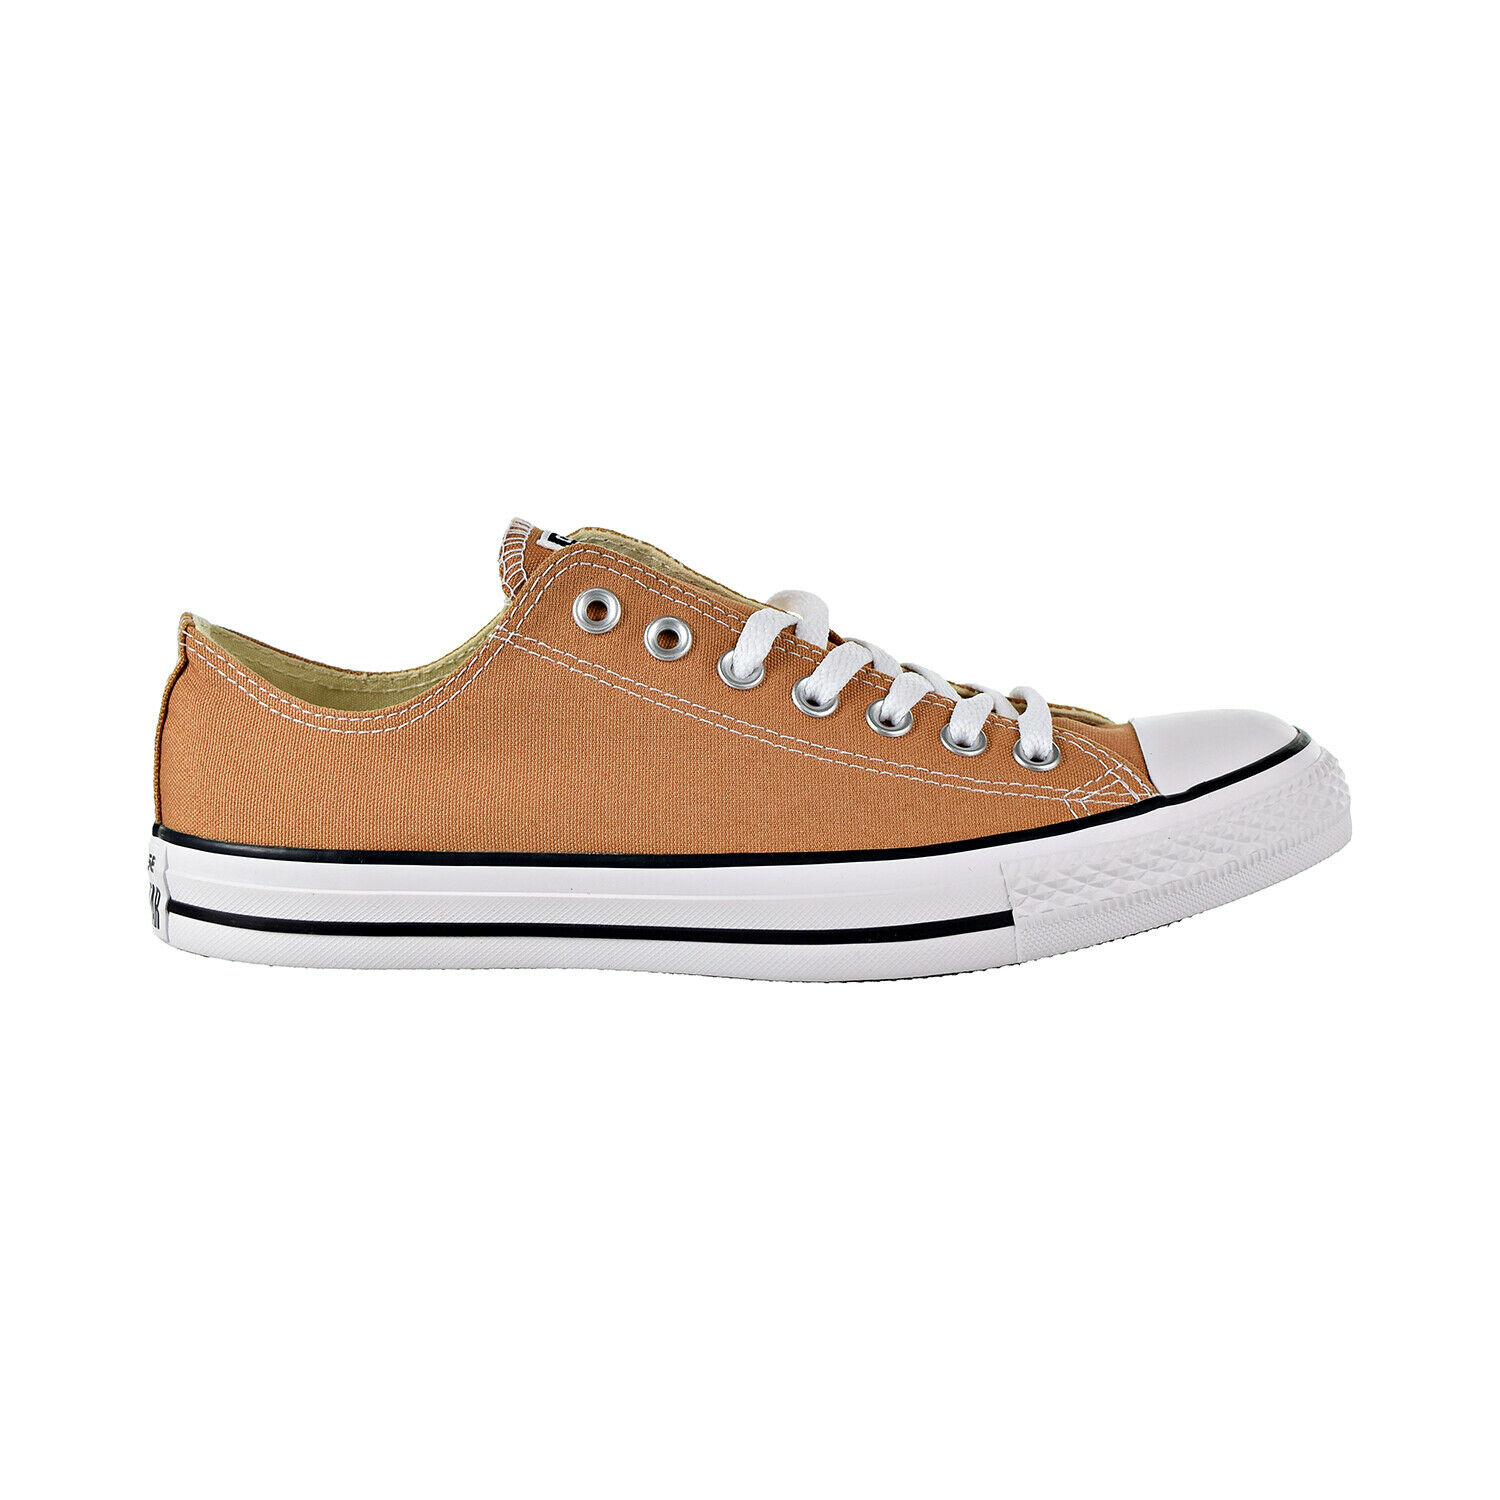 Converse Chuck Taylor All Star Ox Men's shoes Raw Sugar 157651F